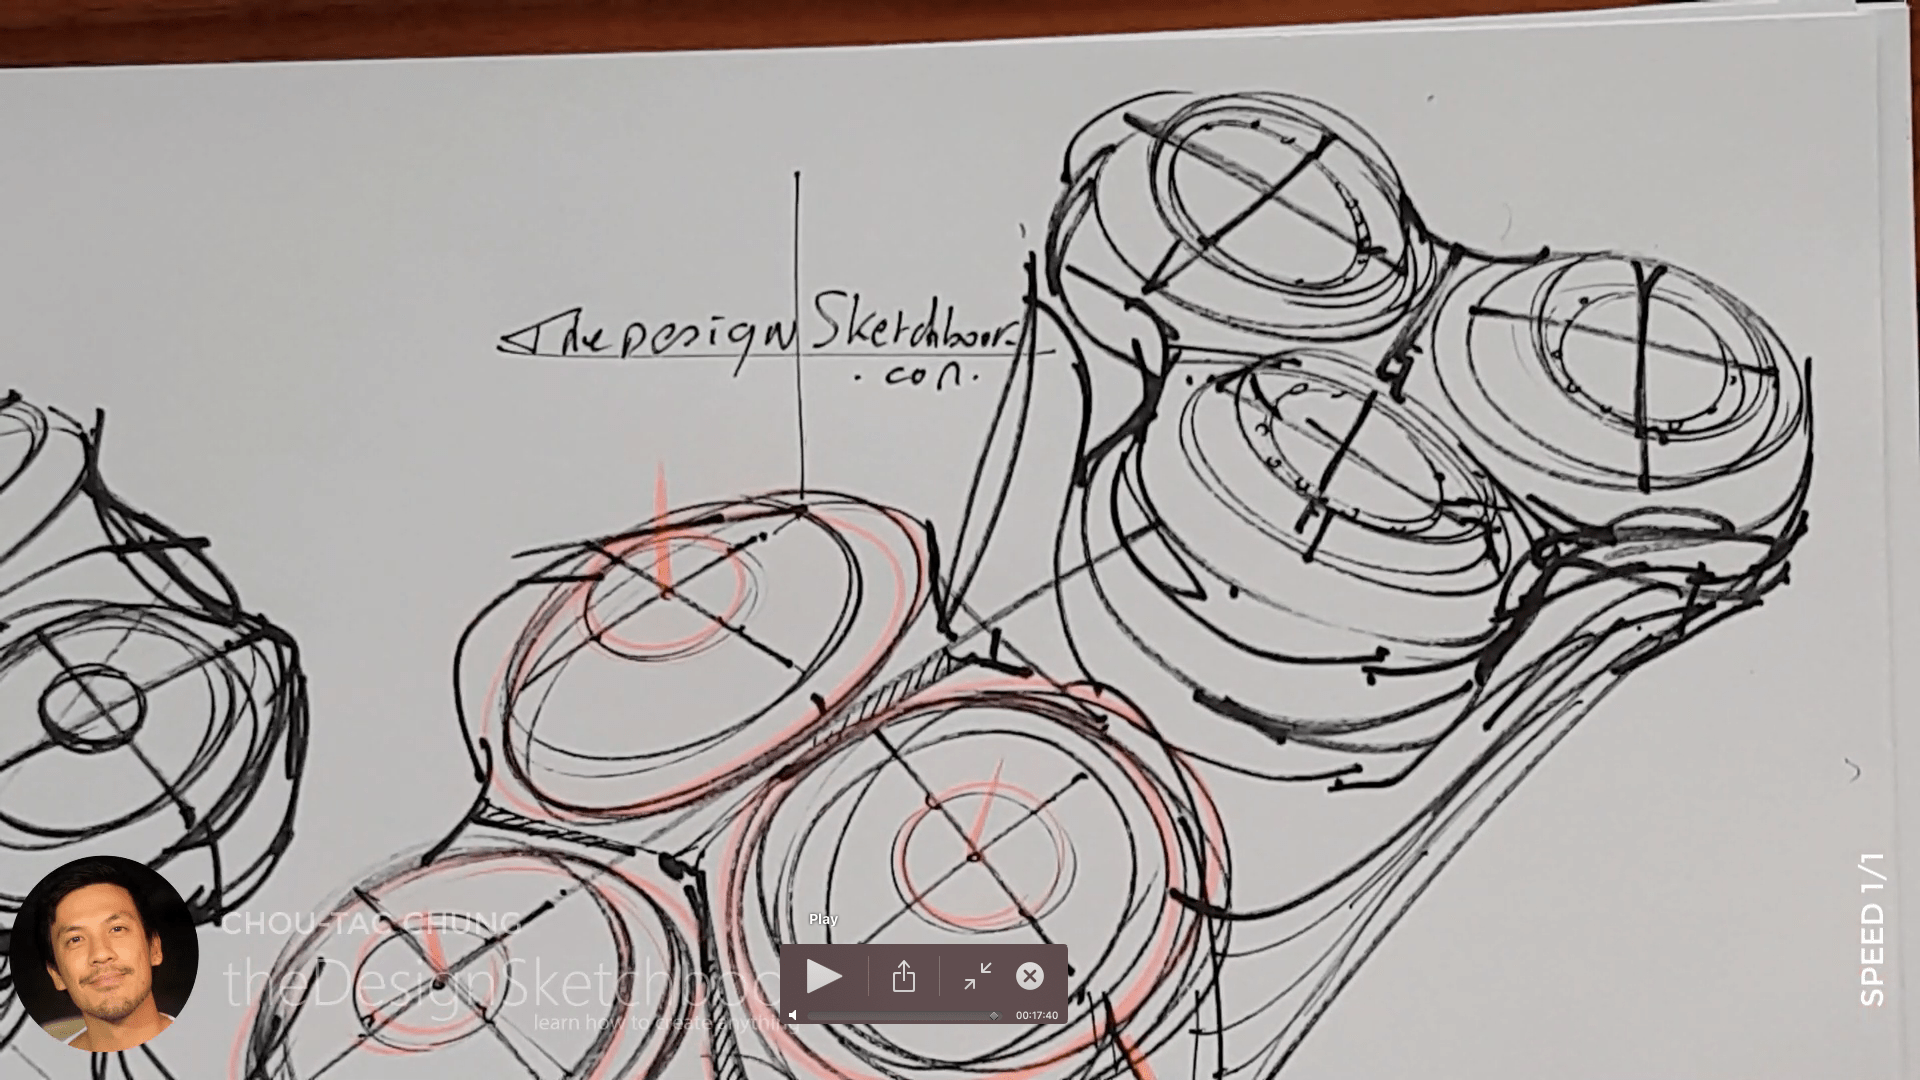 Sketching an electric shaver PHILIPS with the pilot twin marker pen - the design sketchbook - chung chou tac g9